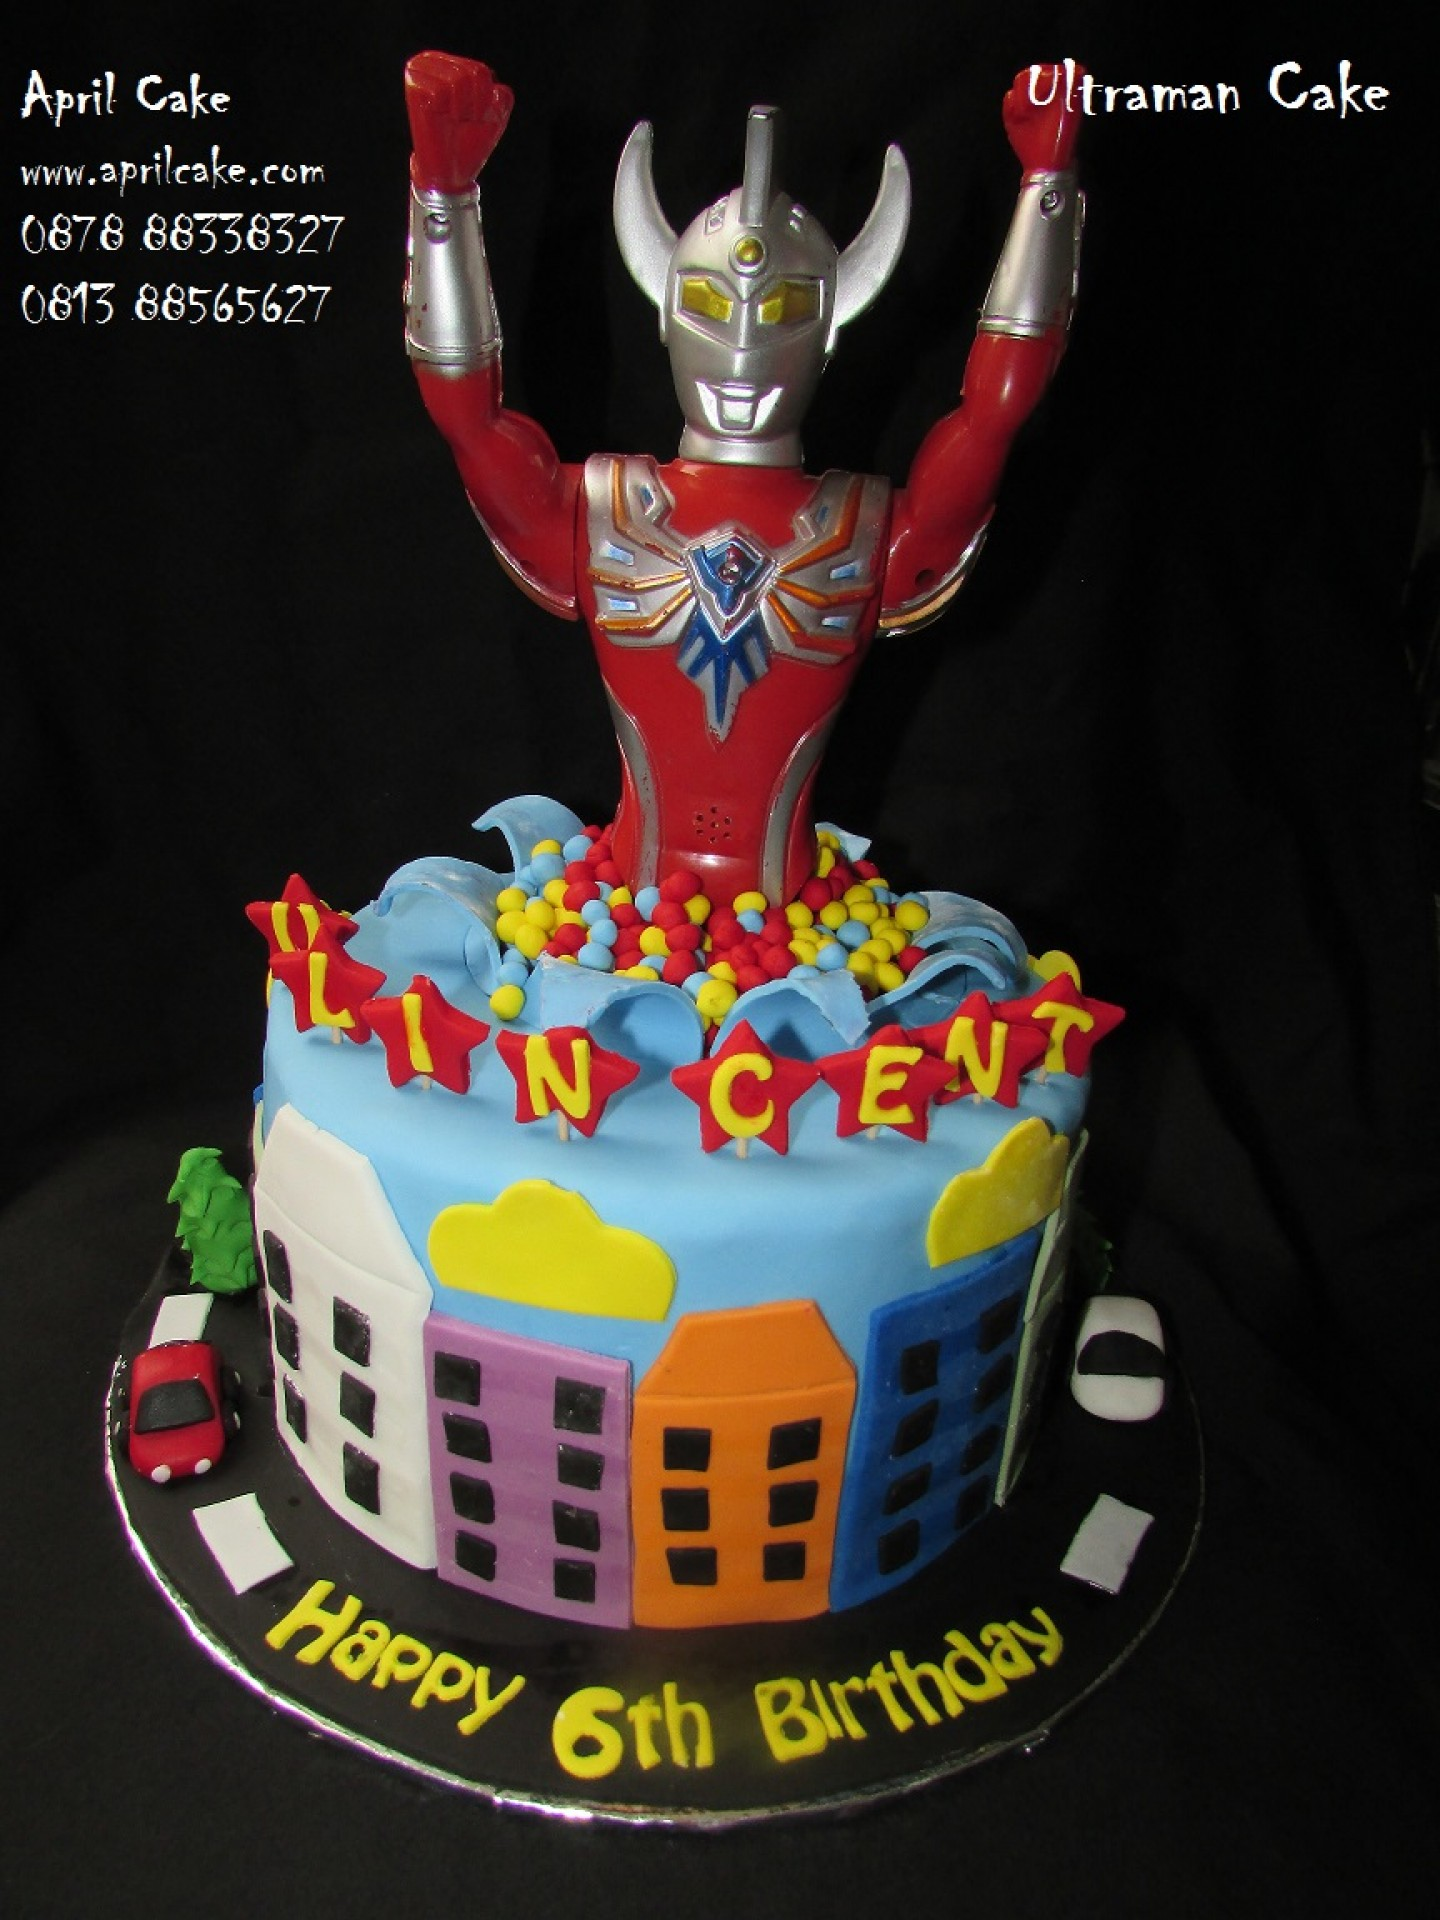 ultraman April Cake